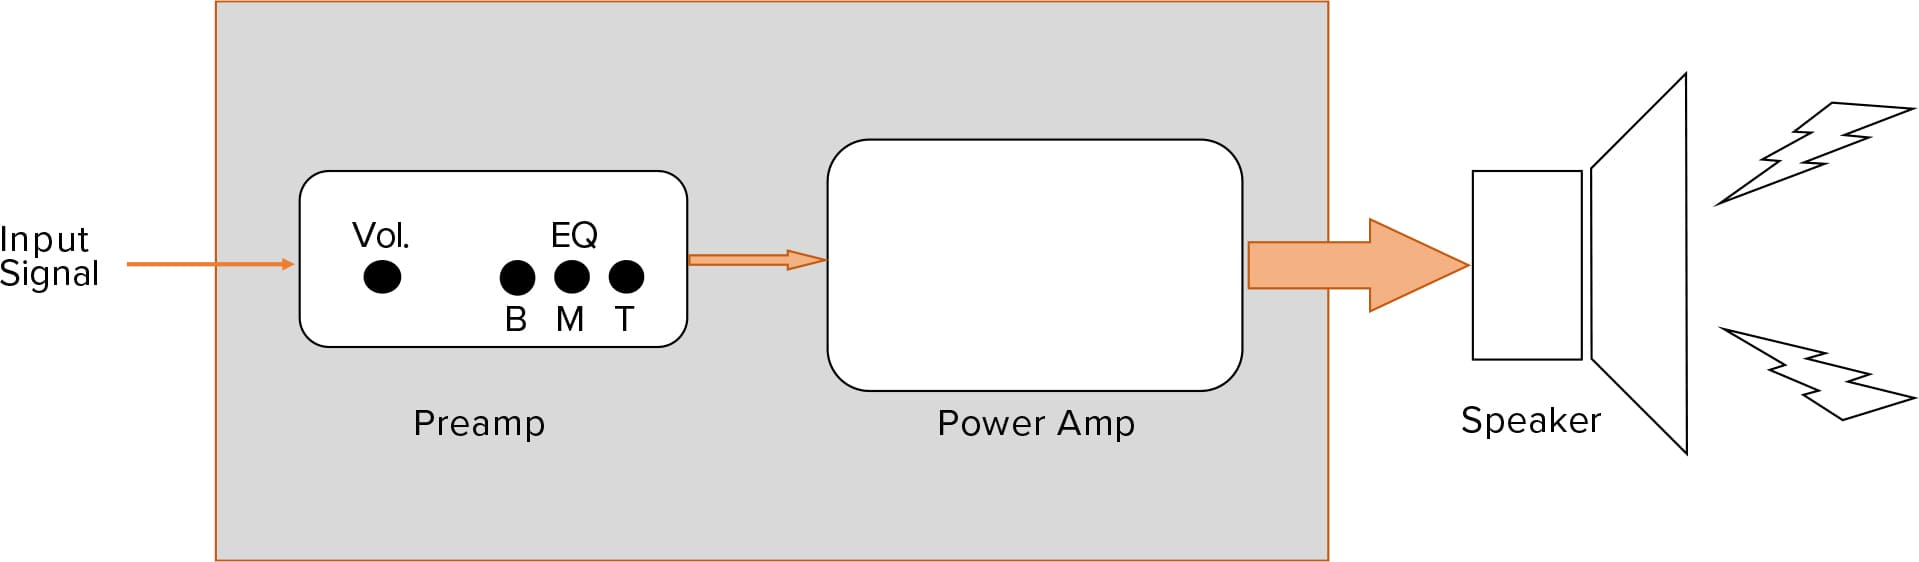 hight resolution of in reality the amp and speaker are an interconnected electrical system with complex push pull dynamic feedback between the two